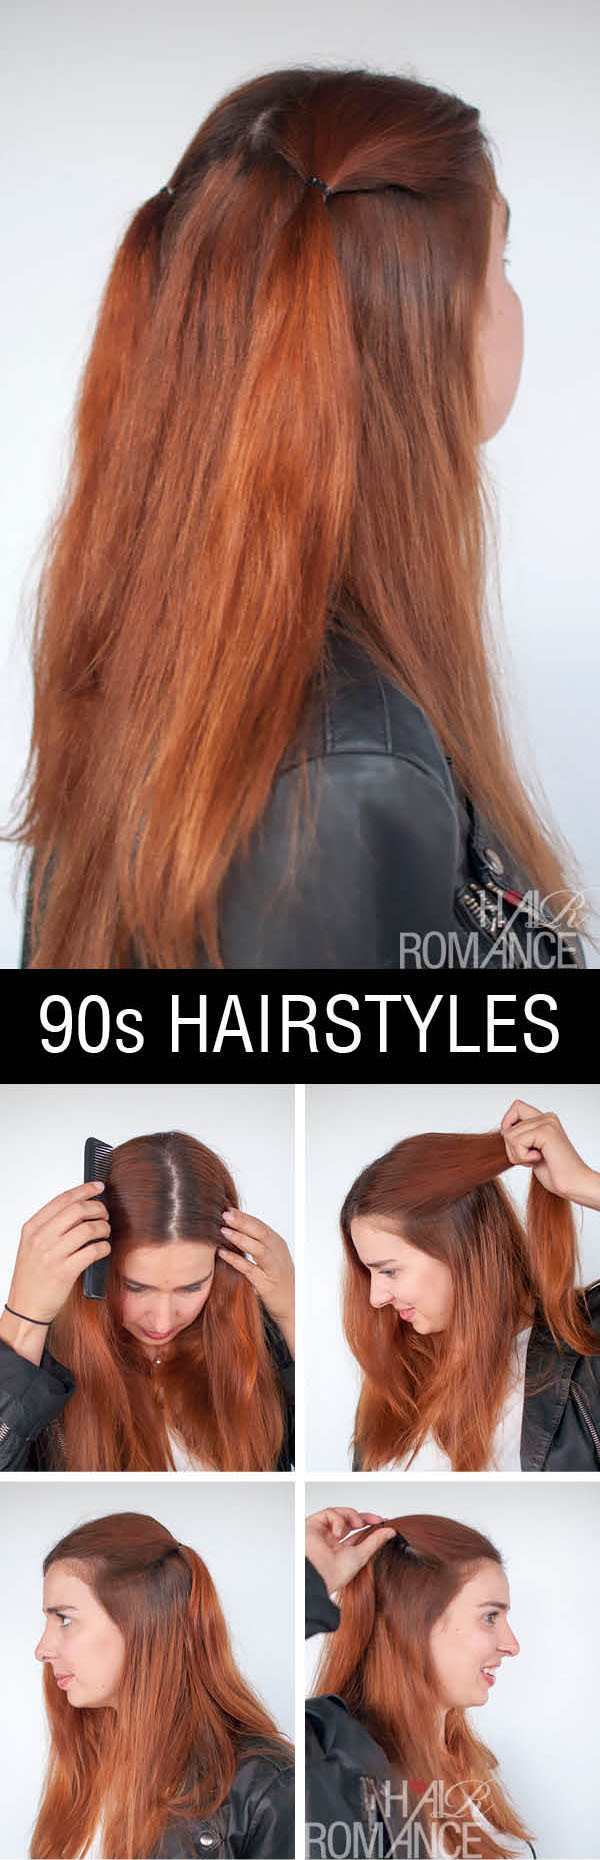 Hair Romance - half up double ponytails - normcore hair tutorials